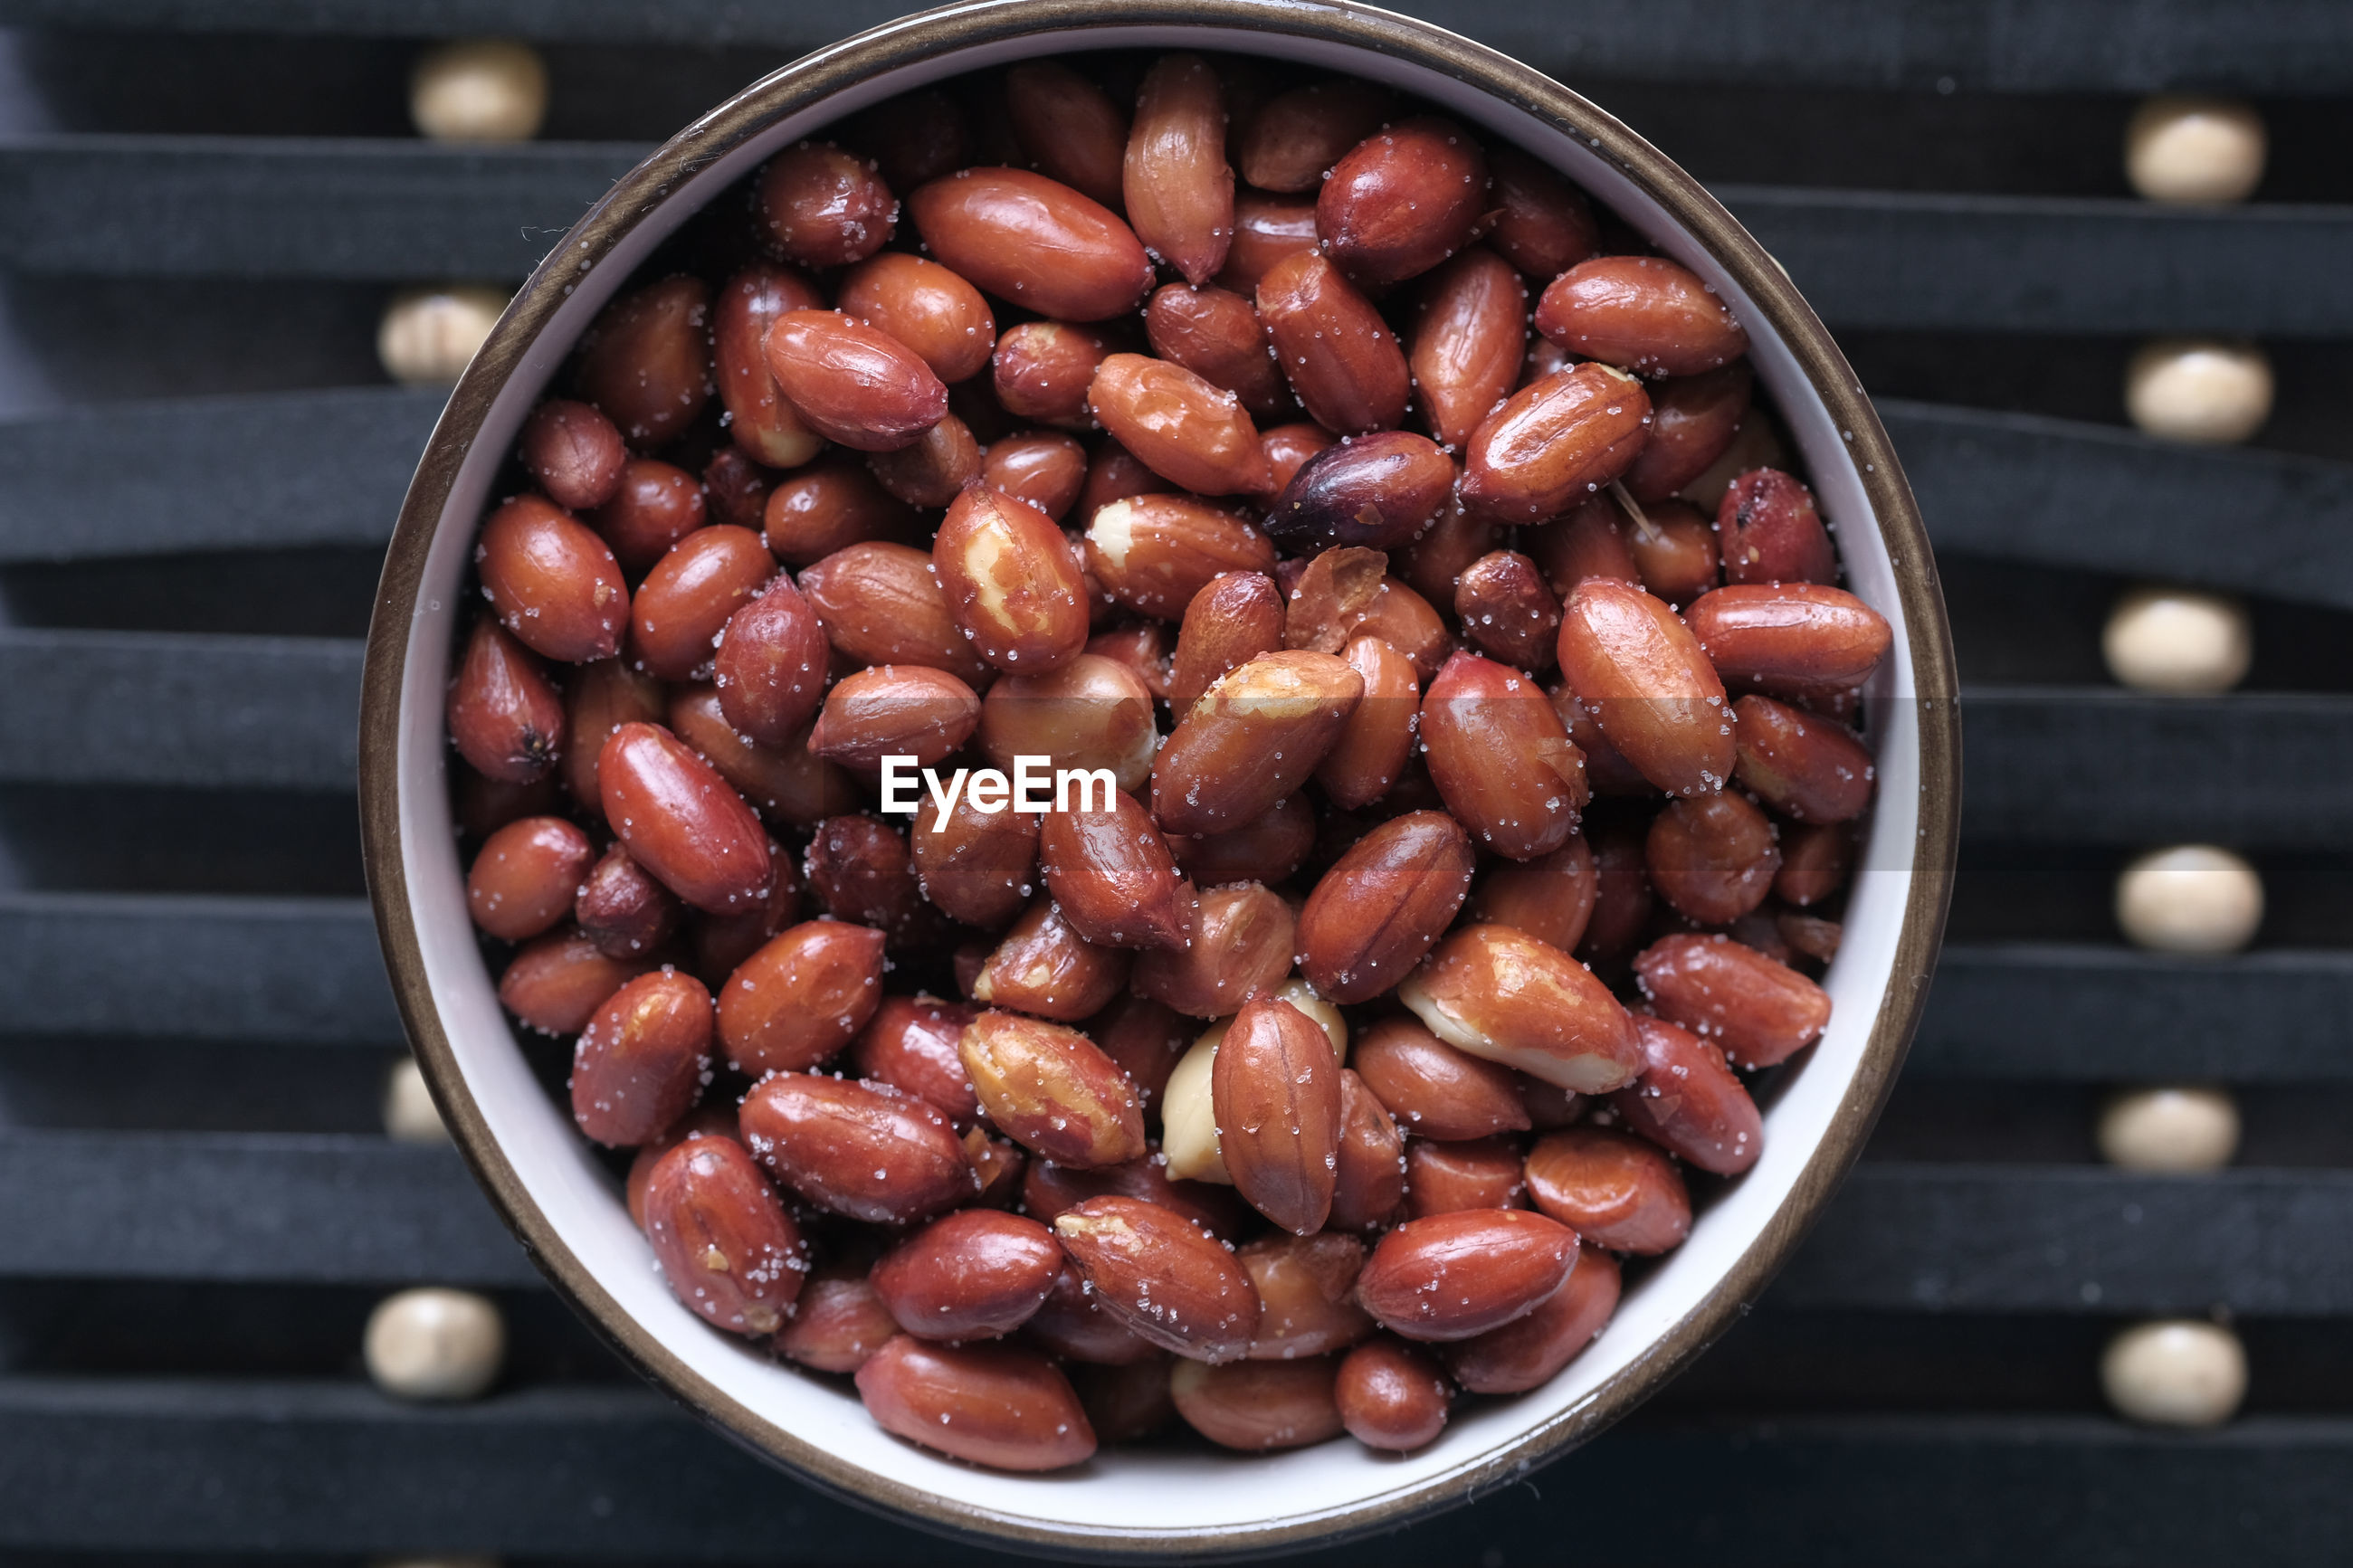 Top view of fresh pea nut in a bowl on table